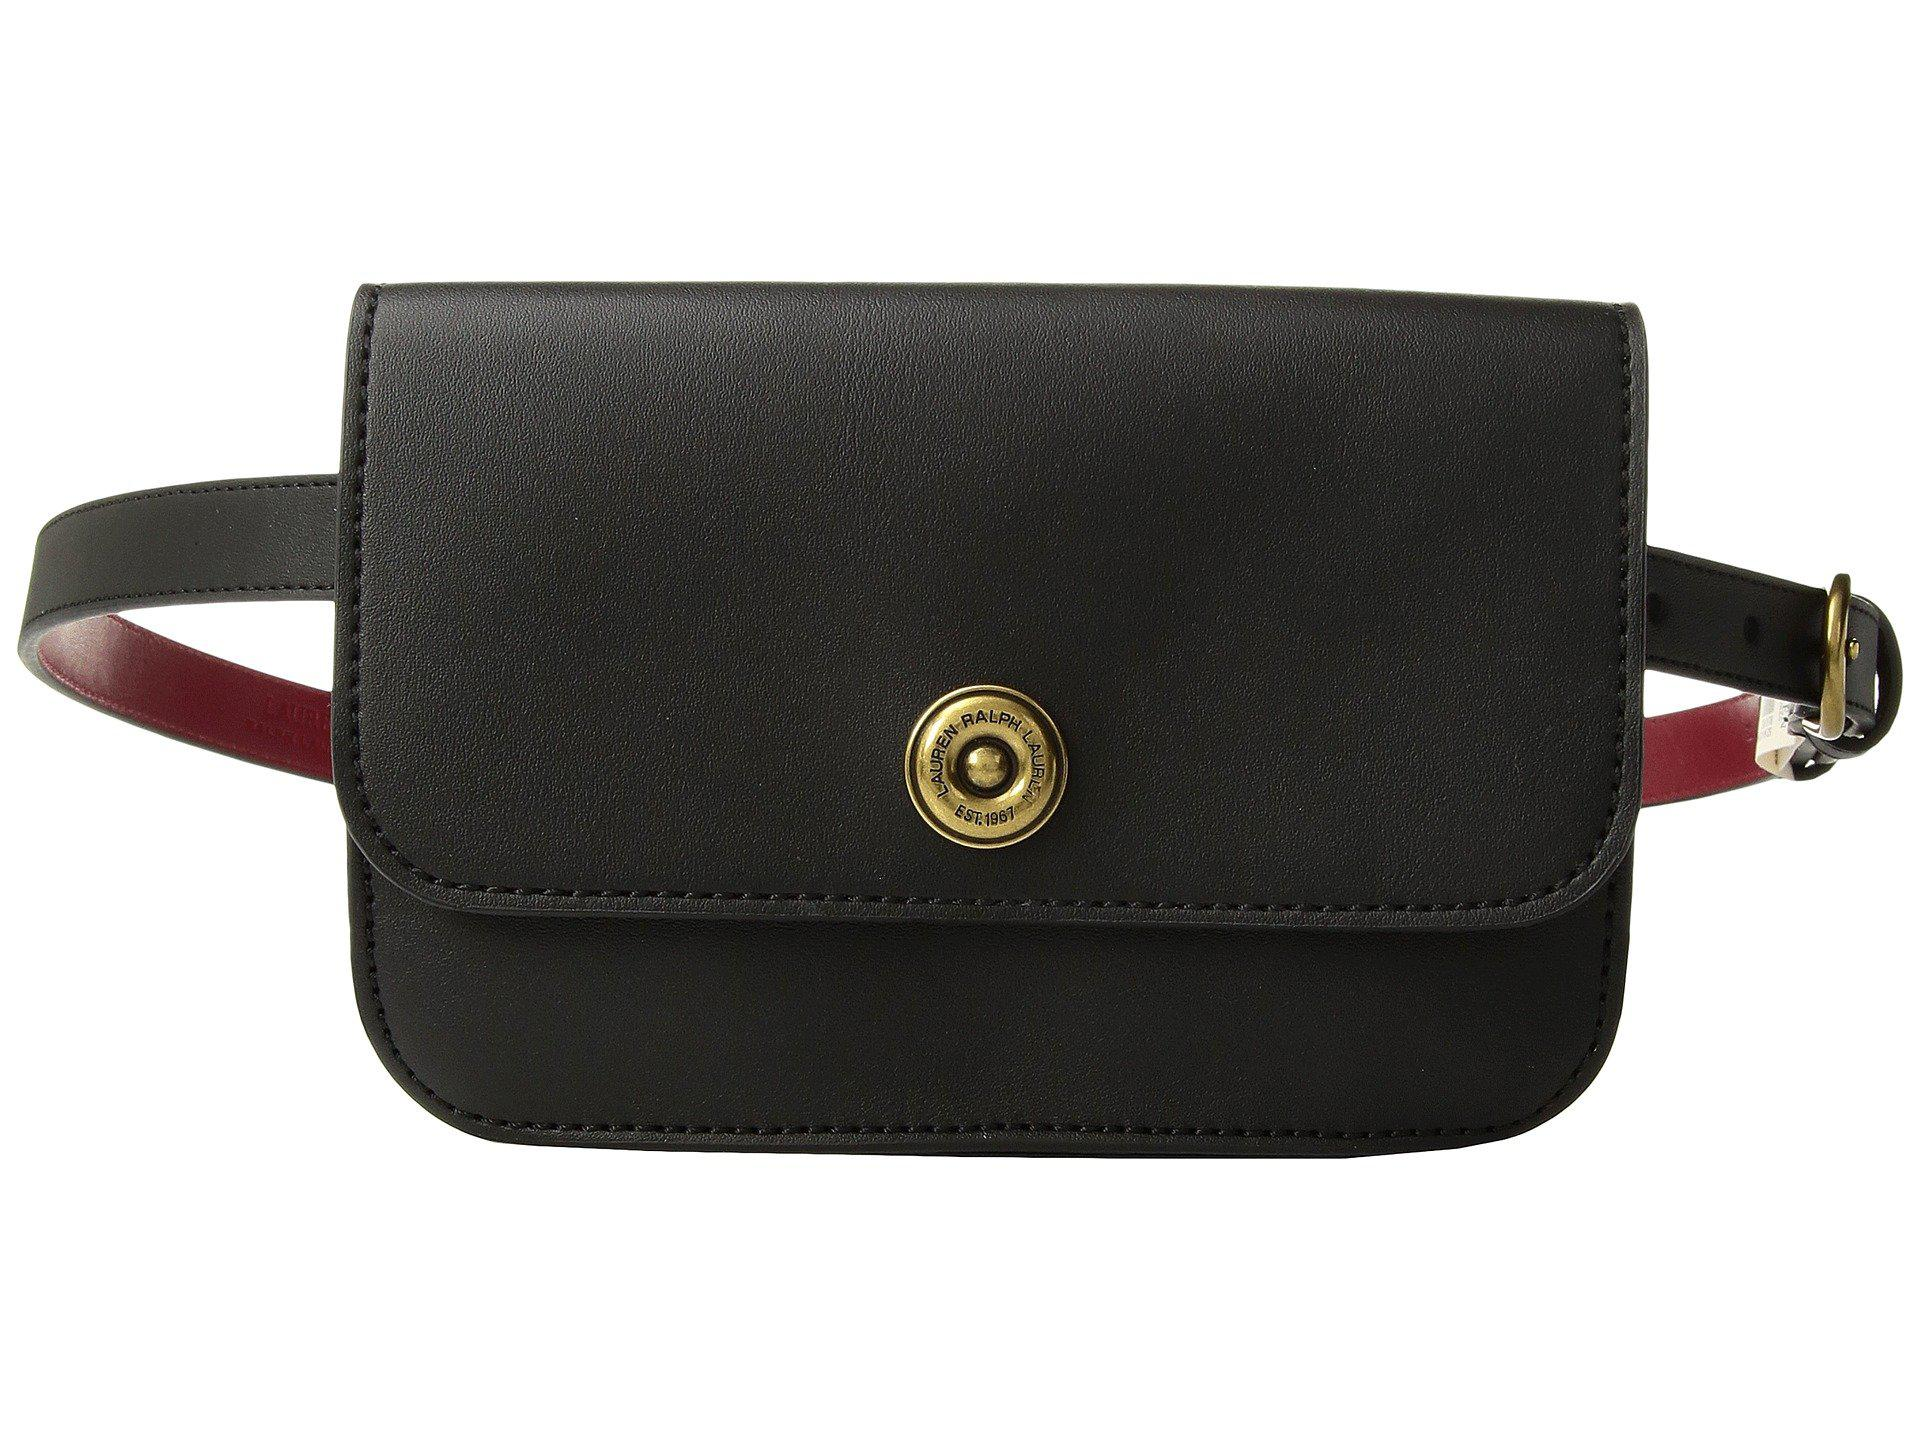 c8c70696c86e Lyst - Lauren by Ralph Lauren Millbrook Belt Bag in Black